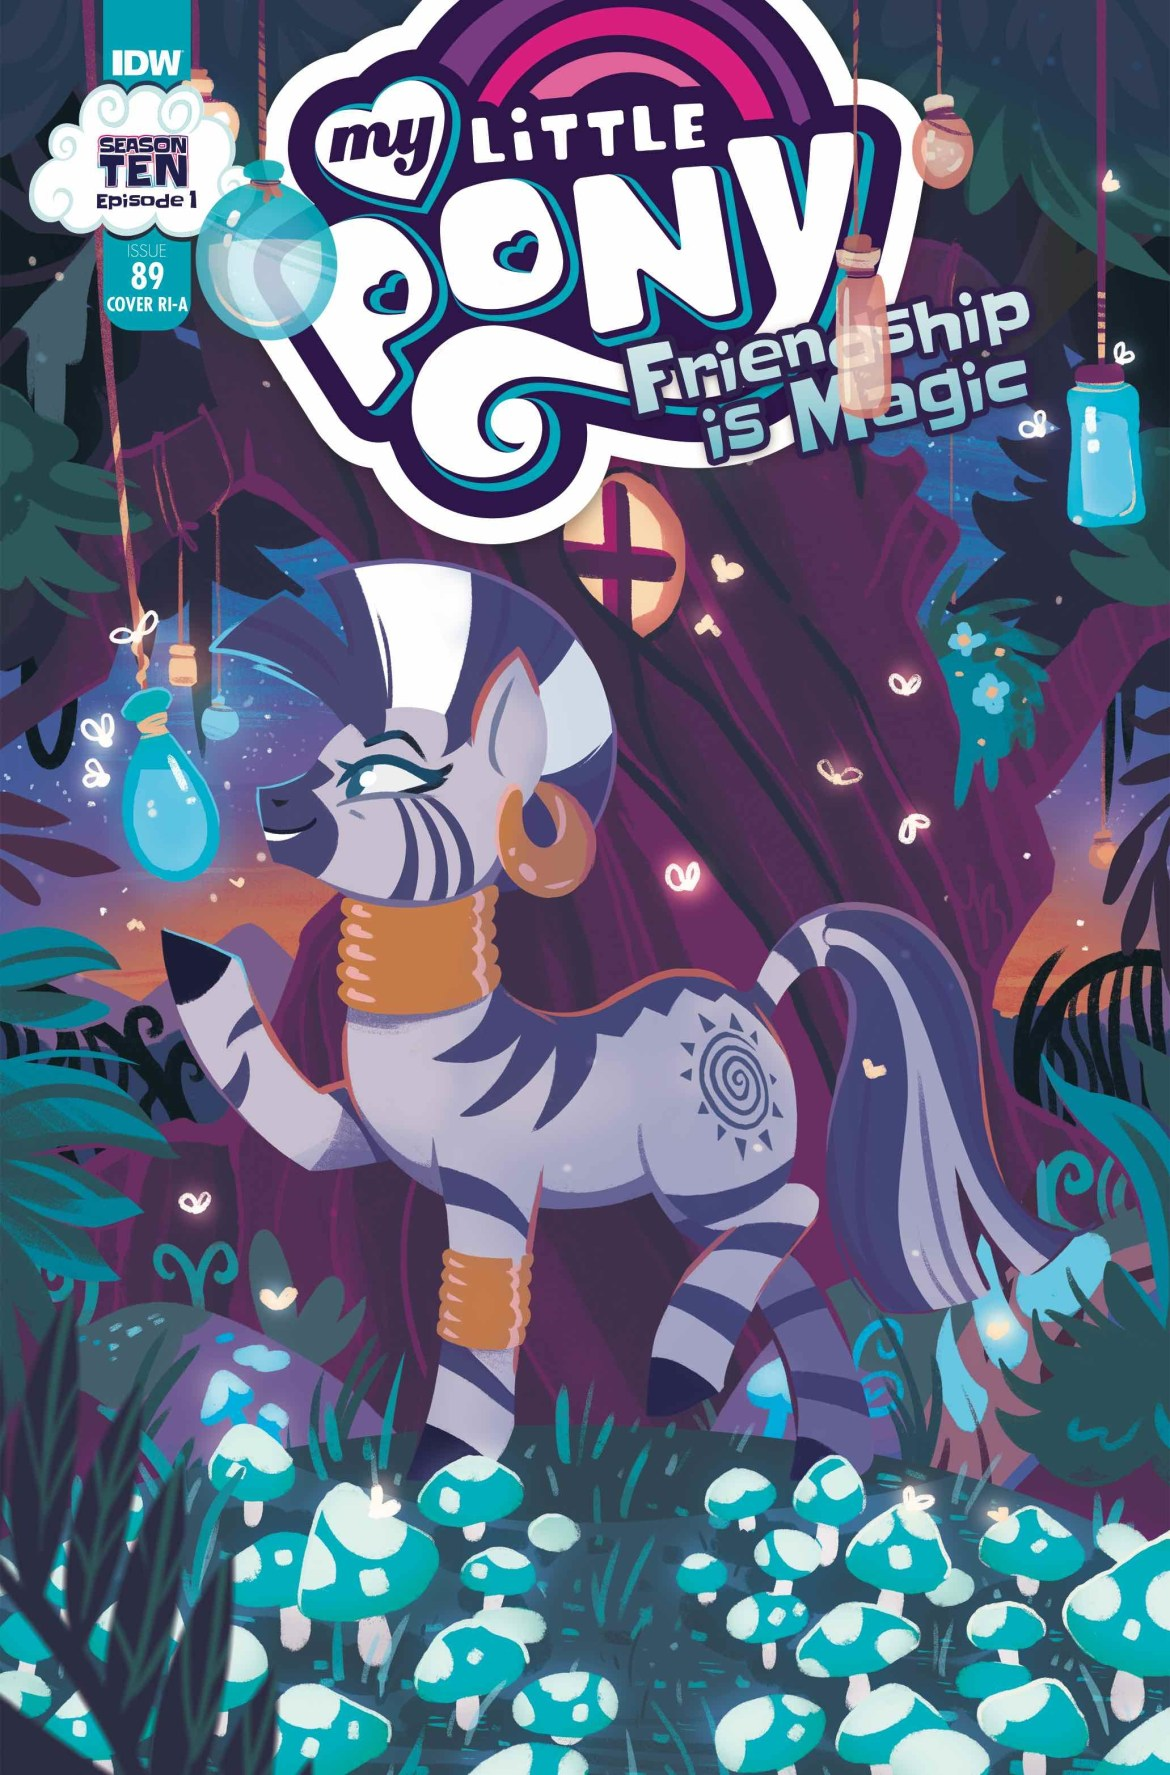 776365_88b53c803b0786f2503bf58eeb7d1be41d1ae4a6 ComicList: IDW Publishing New Releases for 08/12/2020